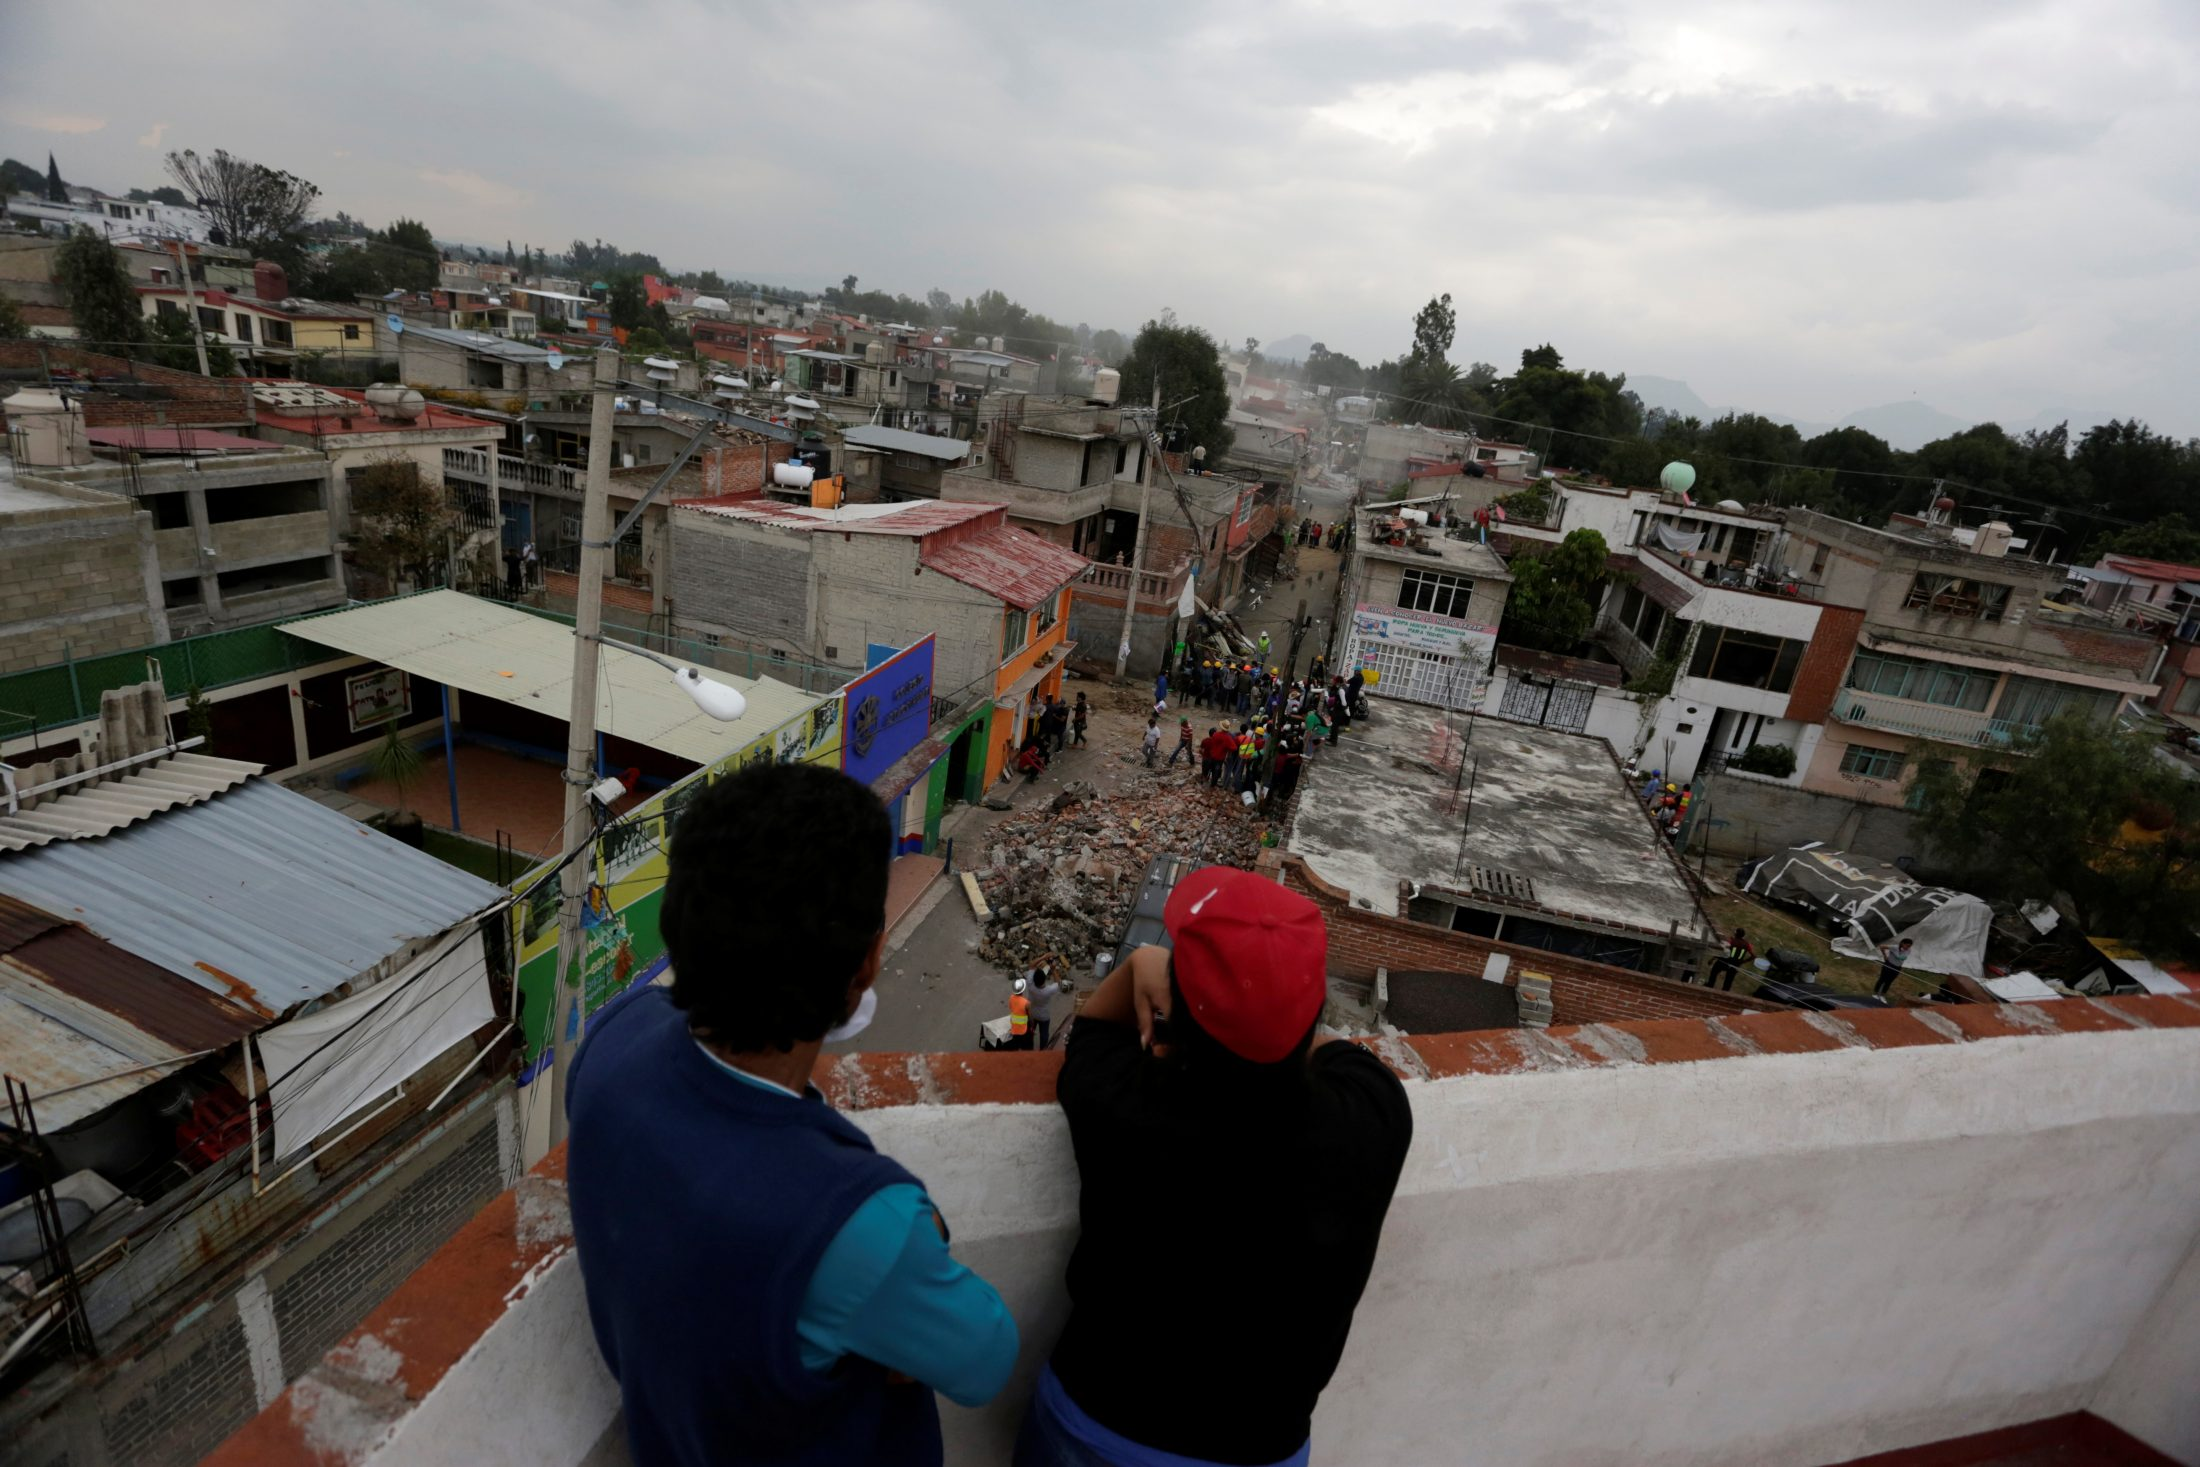 People in Mexico City watch rescuers at work. Photo by Daniel Becerril/Reuters